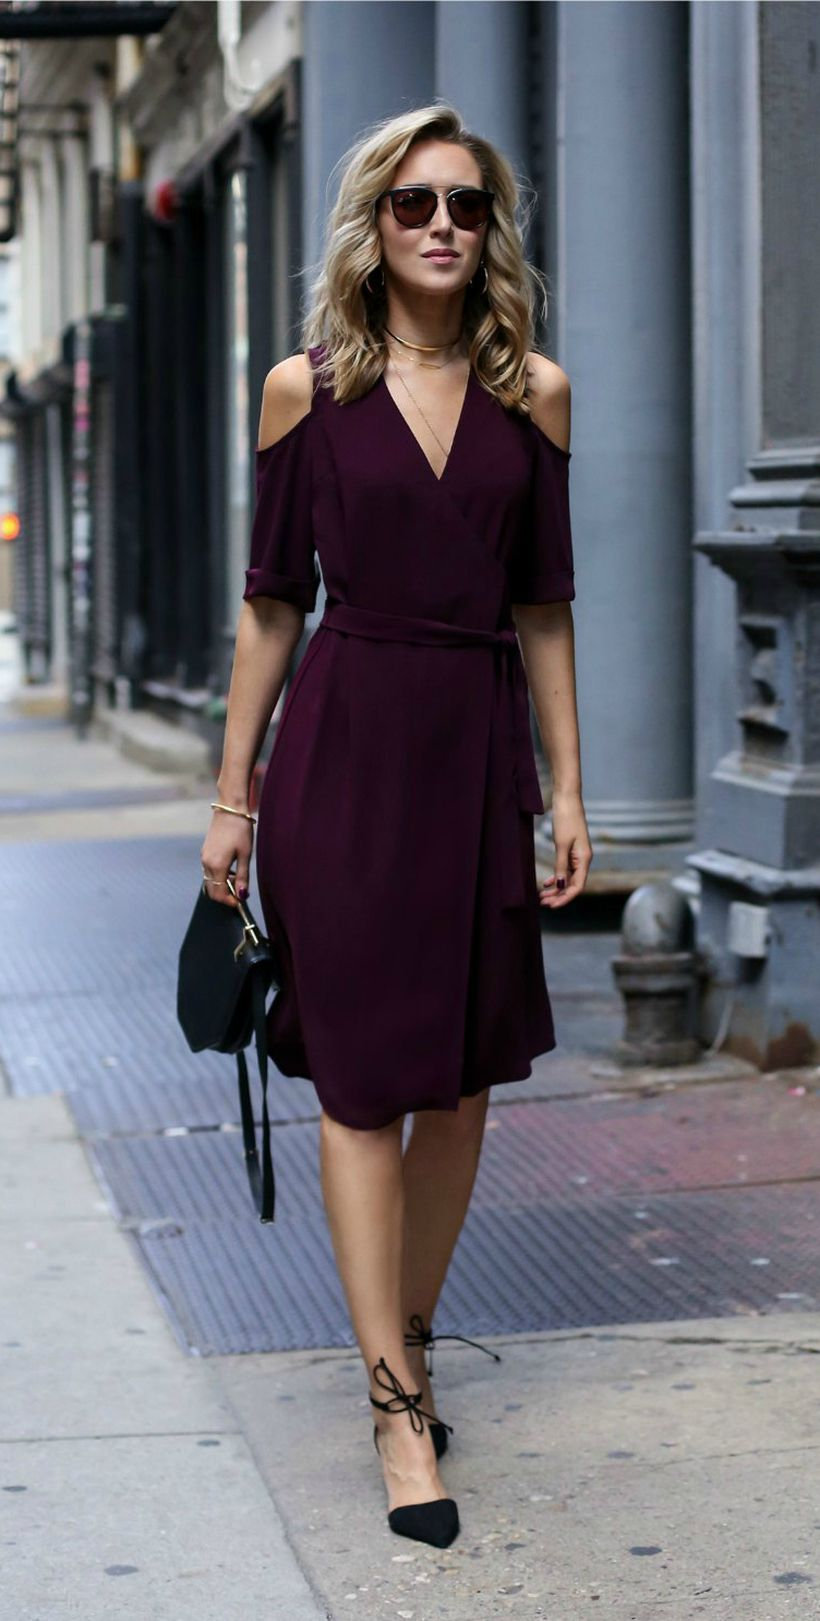 Stylish open shoulder dress outfits 2017 32